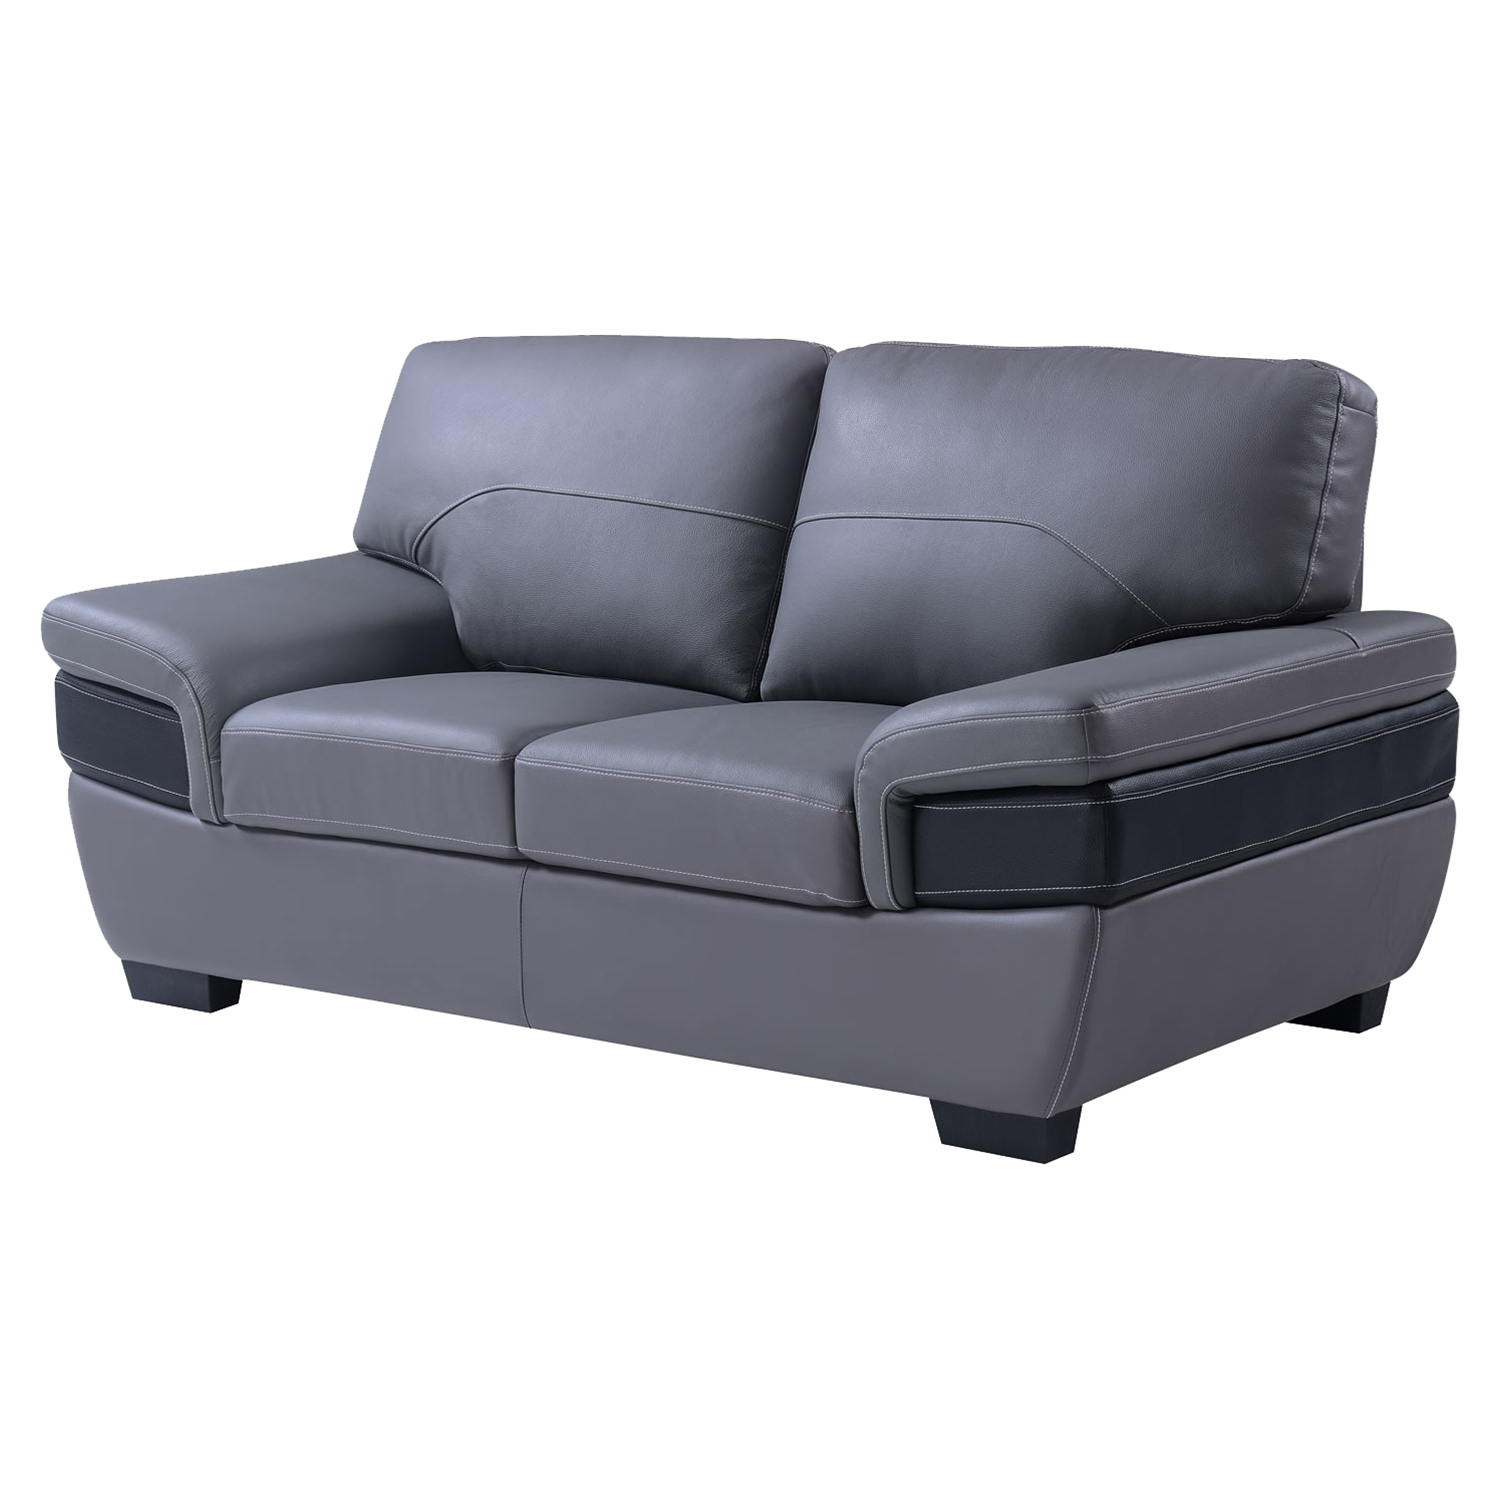 Alicia Leather Loveseat, Dark Gray/Black